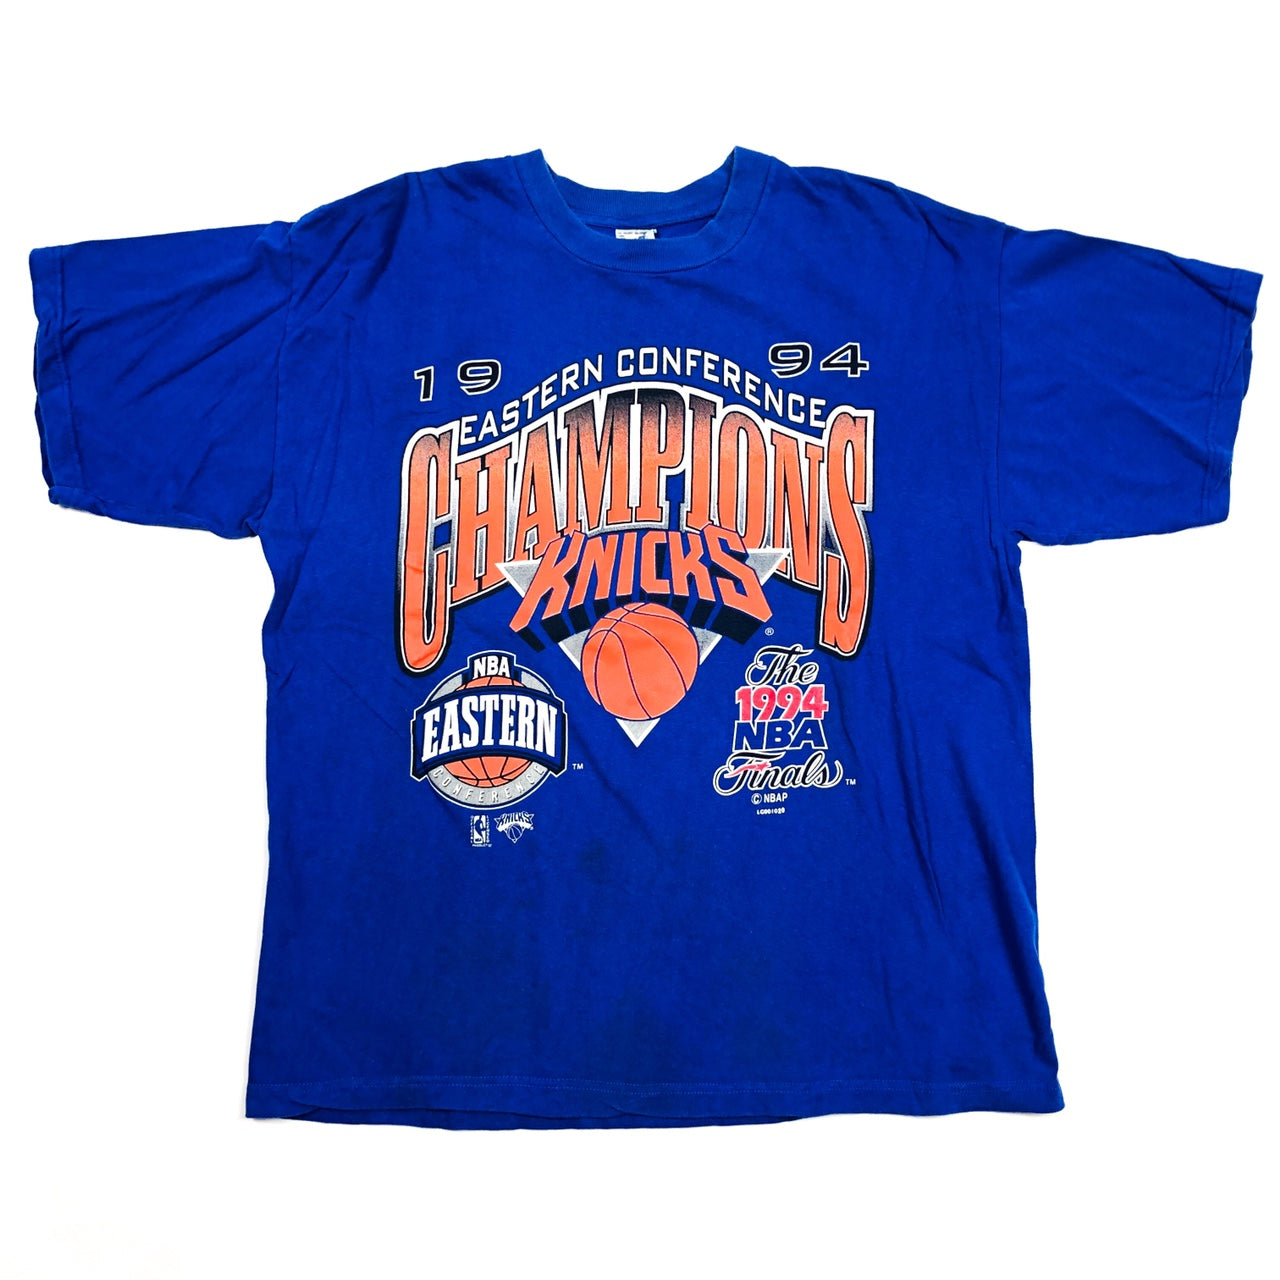 Vintage Knicks Tee (1994 Finals)